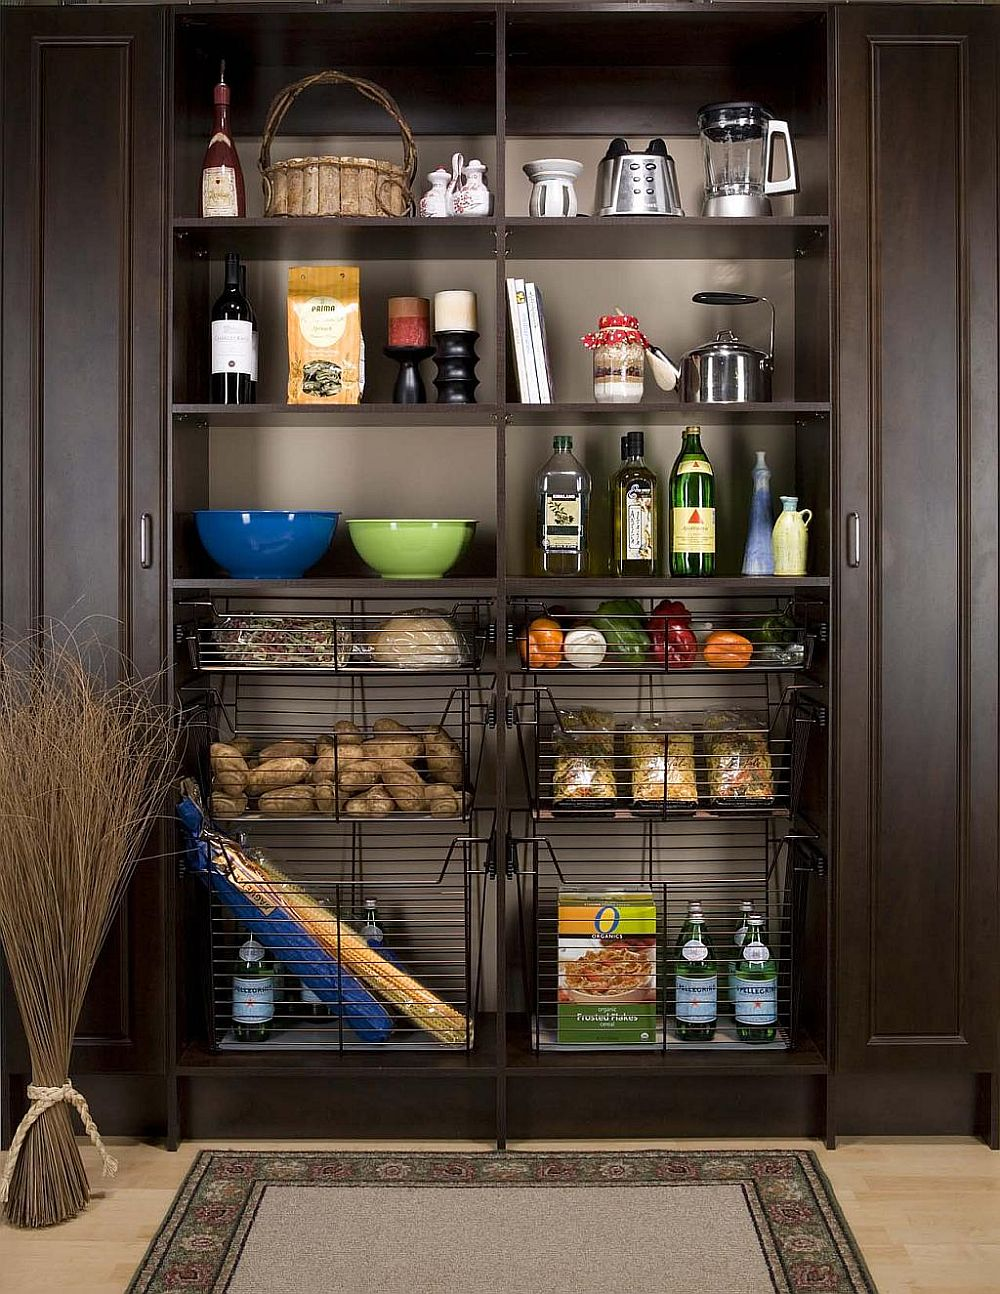 10 Small Pantry Ideas for an Organized SpaceSavvy Kitchen